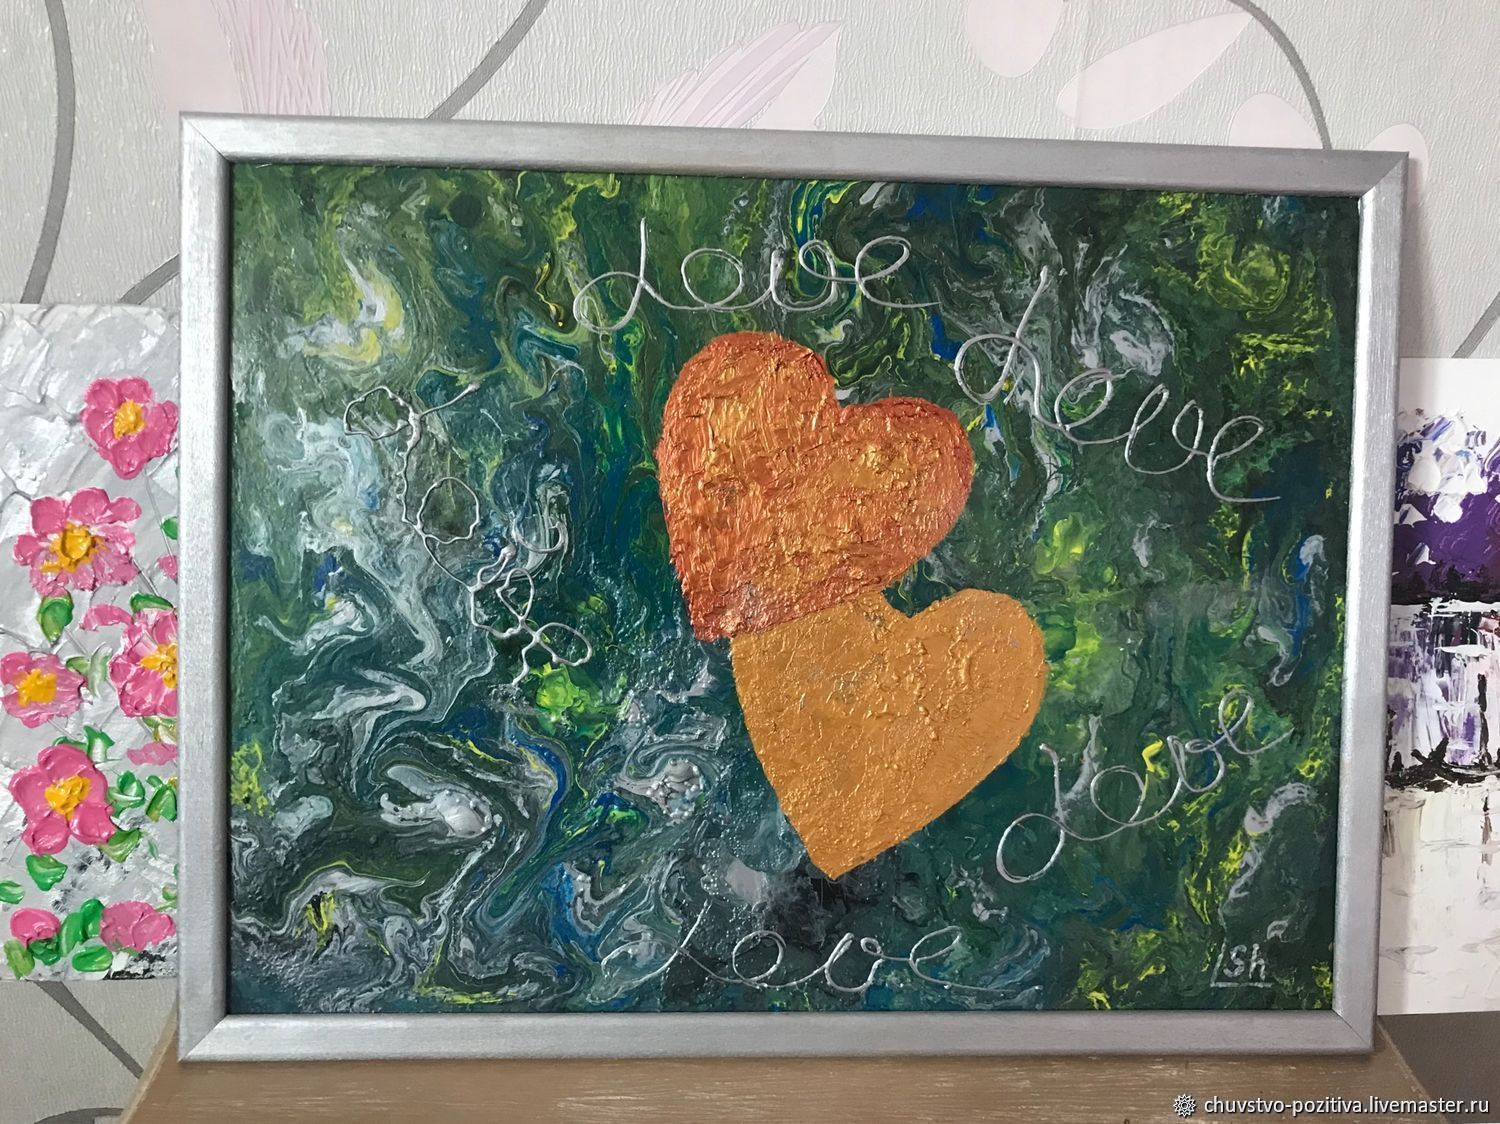 Painting with two hearts and filling under malachite 'We are together' 40h30, Pictures, Volgograd,  Фото №1